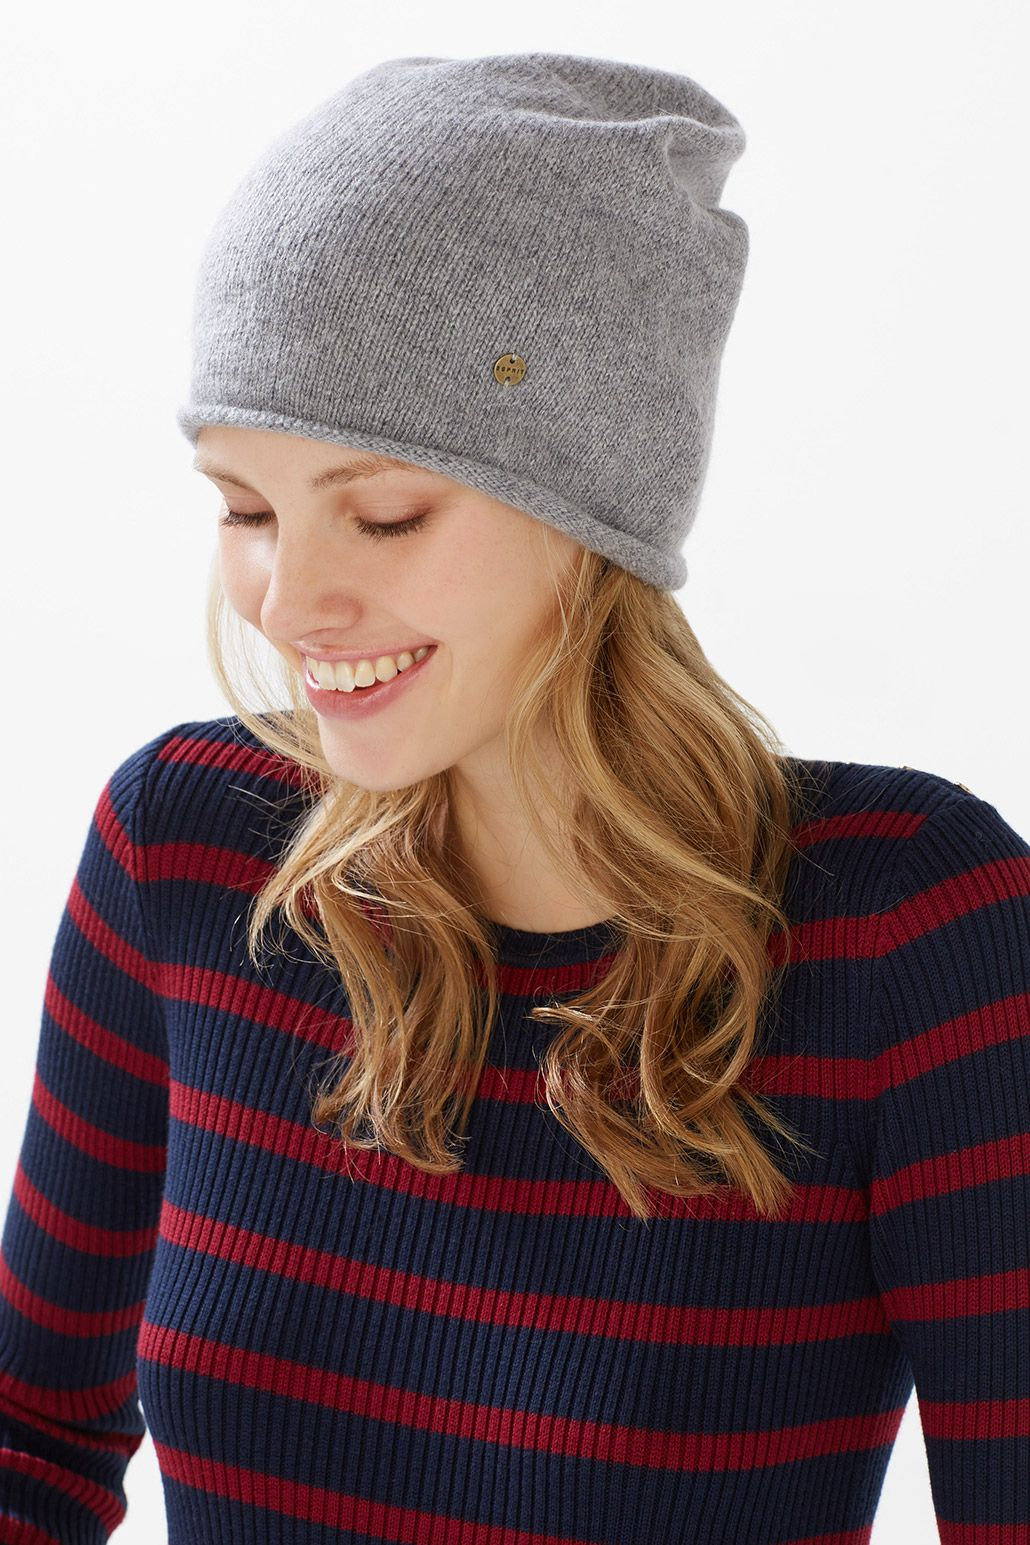 54ea8d2f8 Esprit / Knitted hat in a wool blend with mohair | Hats | Knitted ...